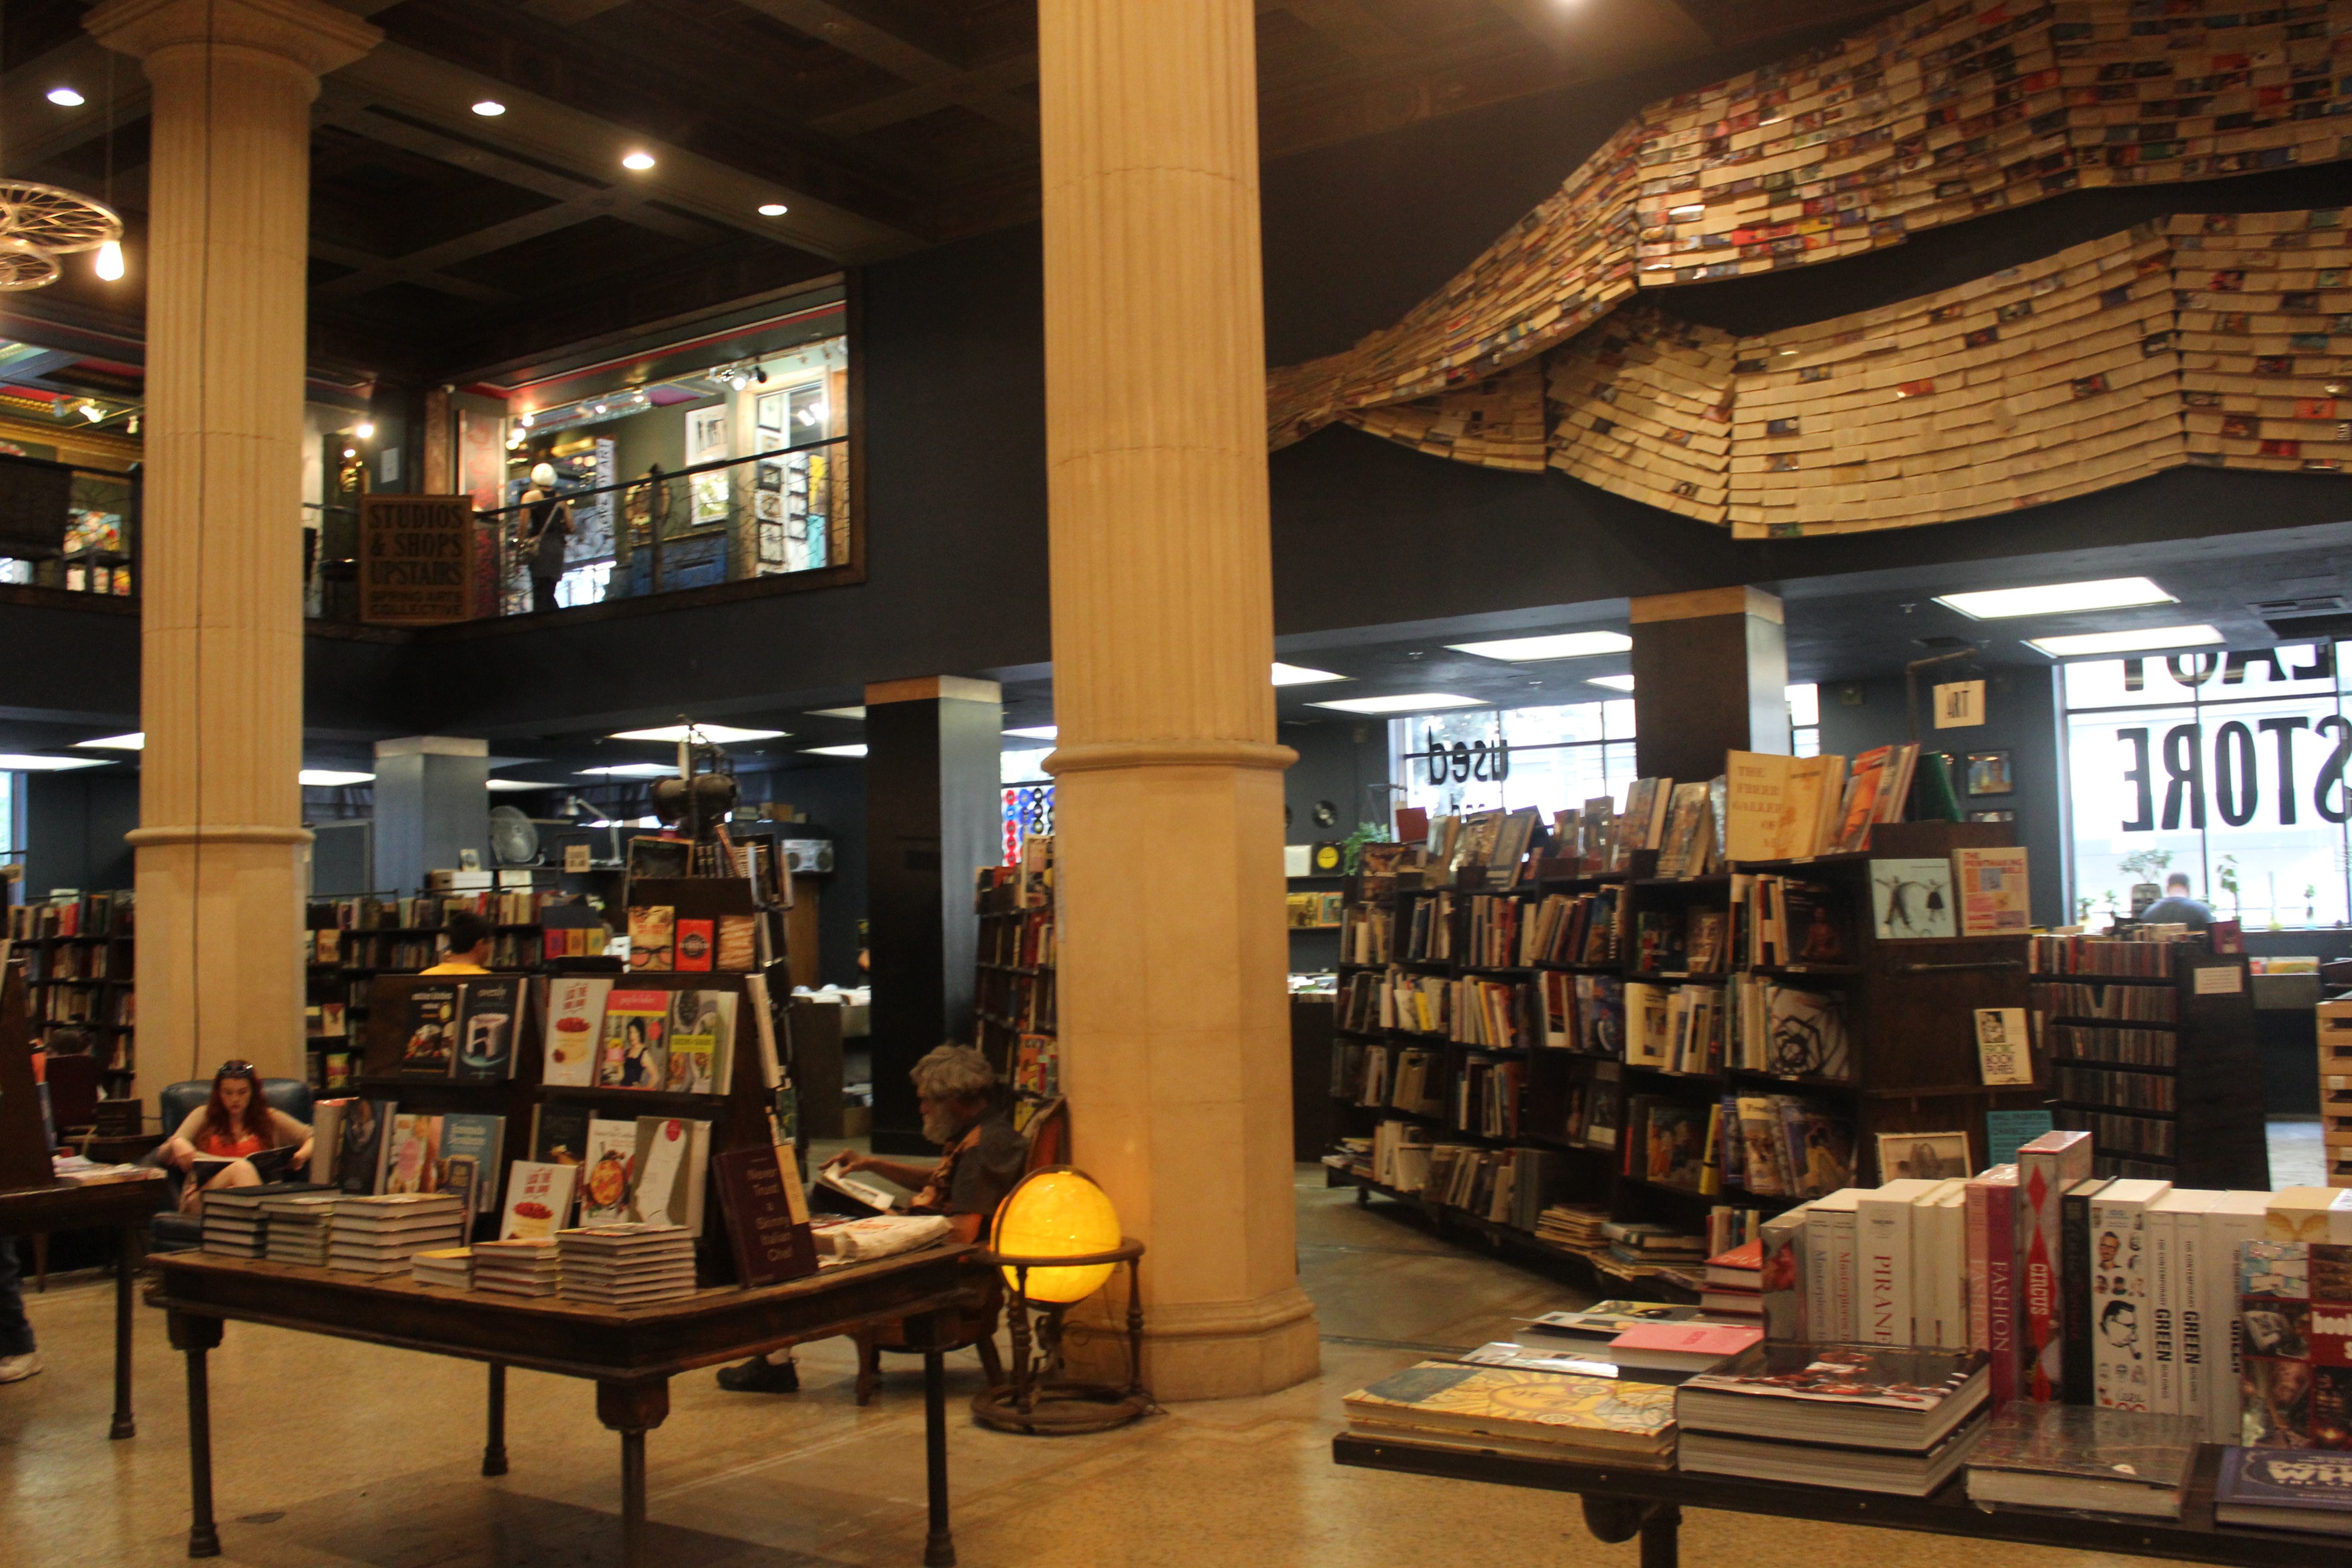 bookstore last angeles los books architecture downtown offers than bank pearl located hides atmosphere rich spring st